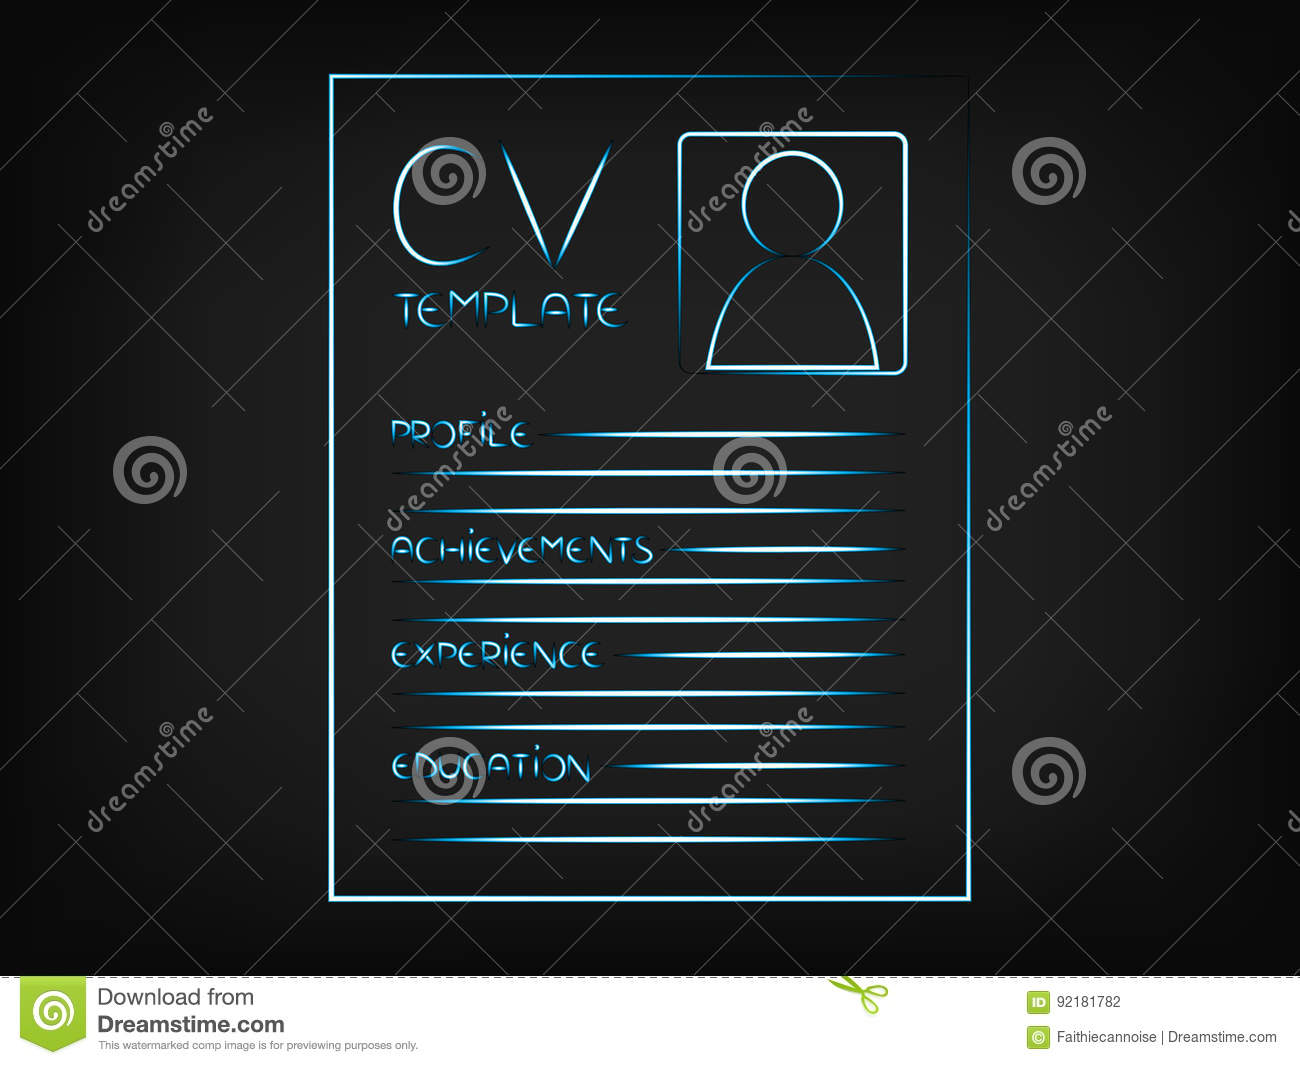 cv illustration highlighting the sections that should be include